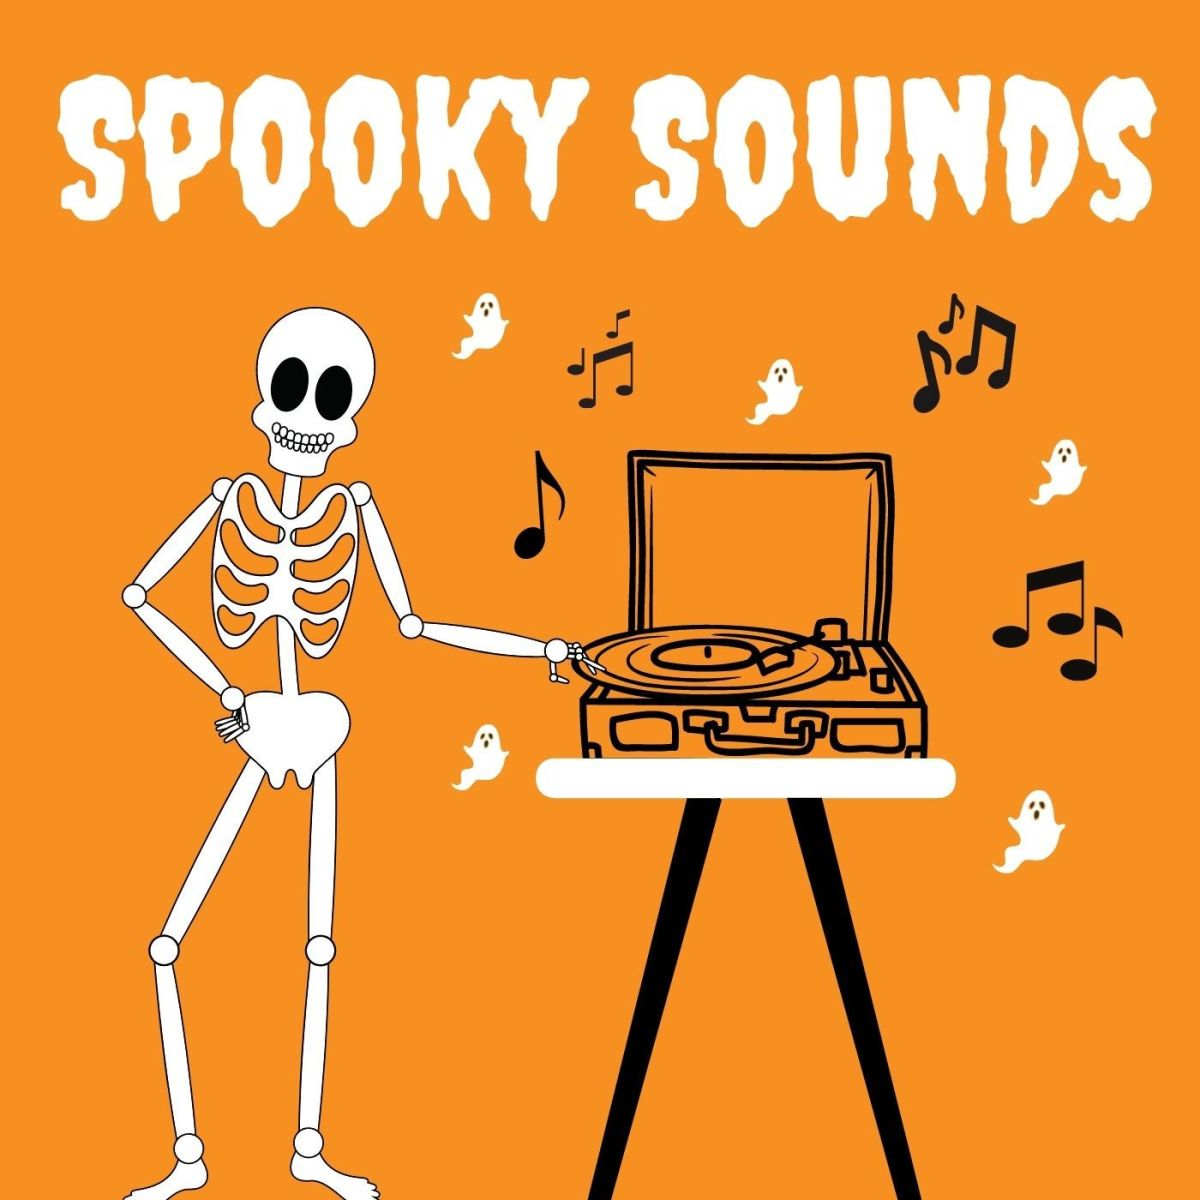 Get the spooky tunes flowing!